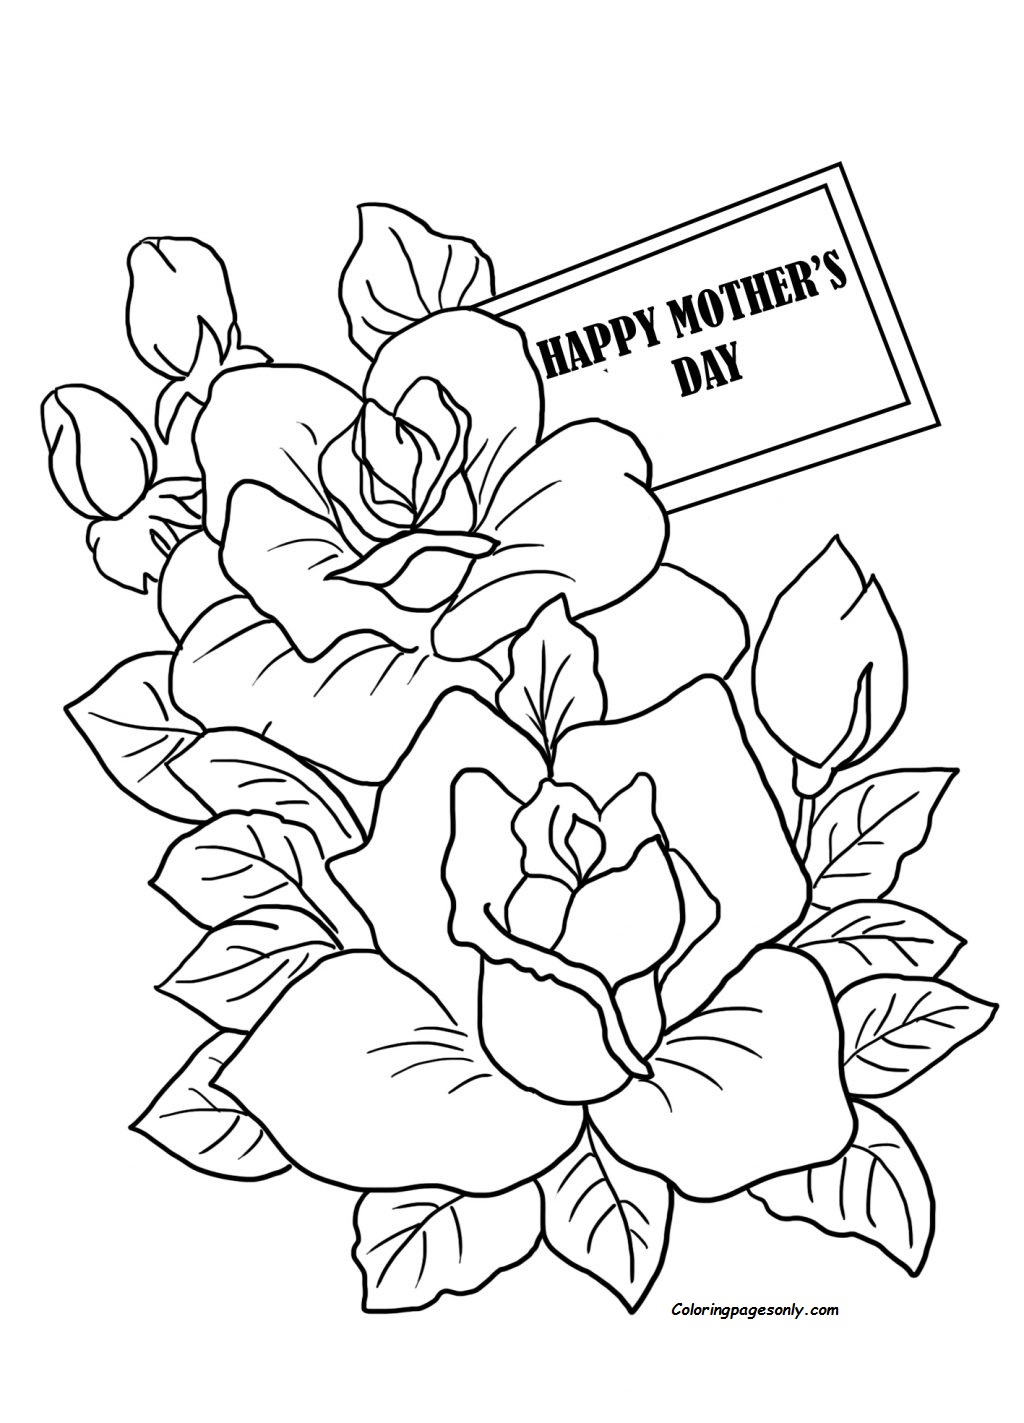 Mothers Day Coloring Page Cards Page Coloring Page Free Coloring Pages Online